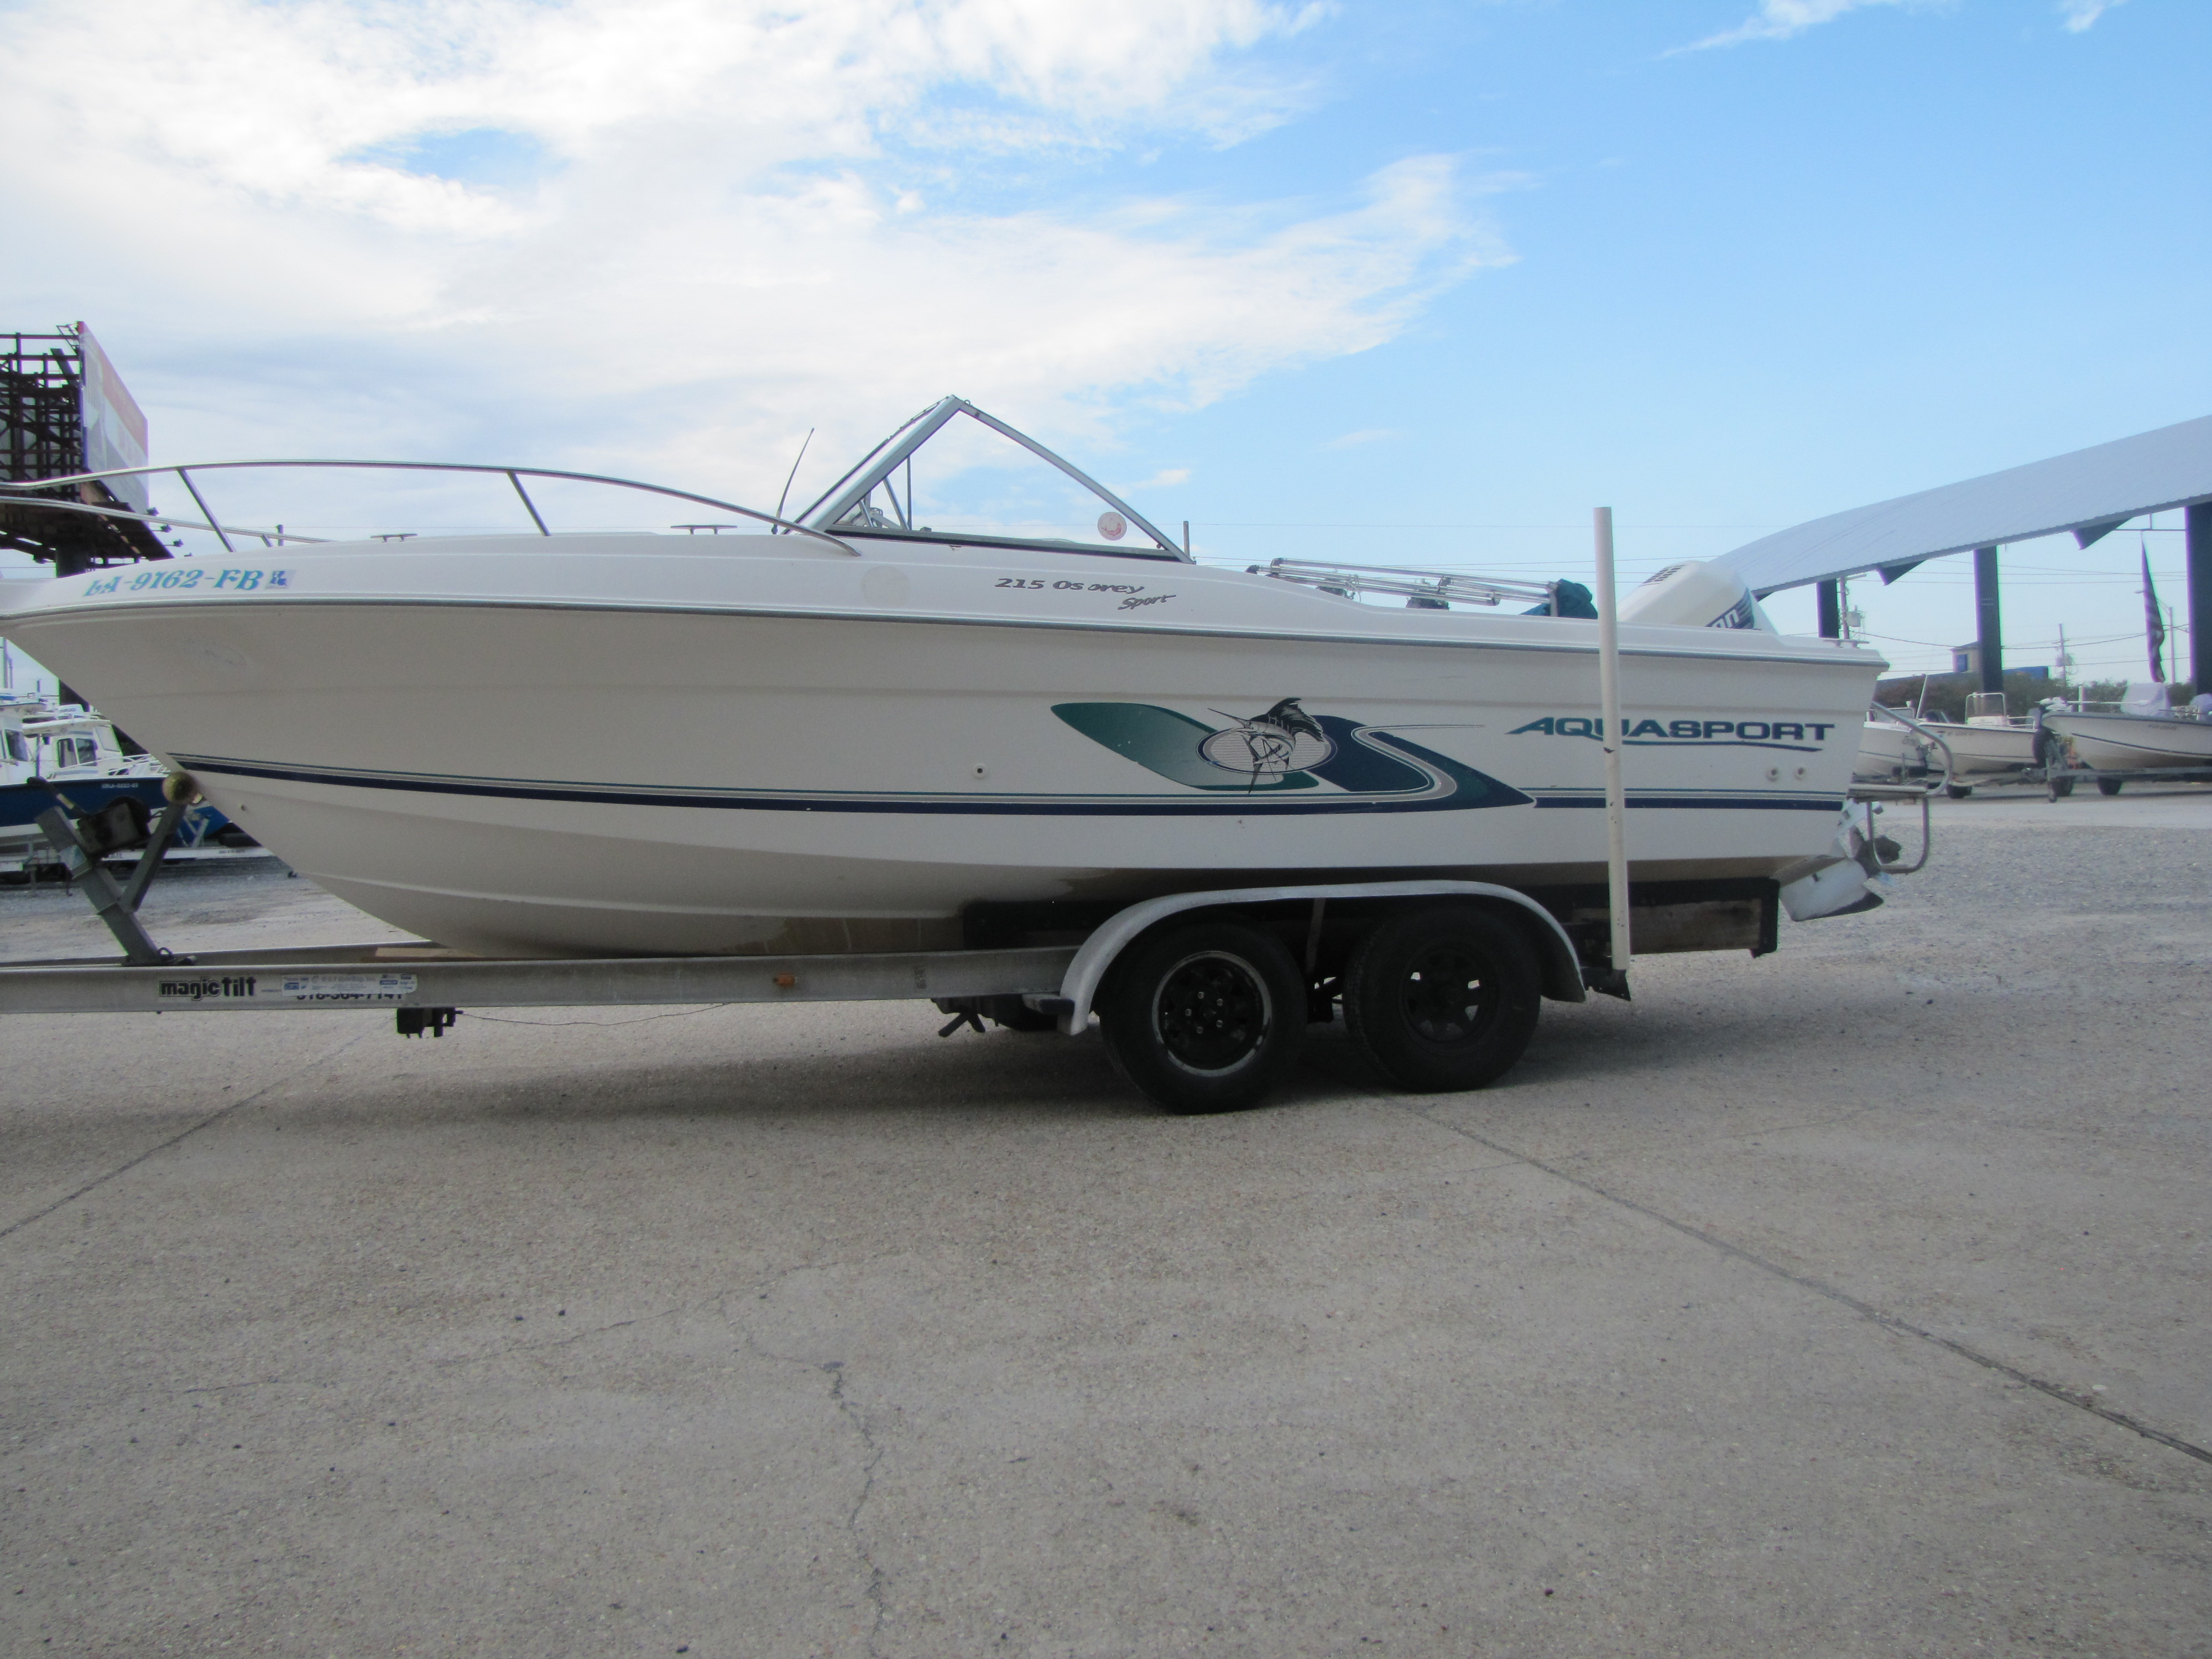 2000 Aquasport boat for sale, model of the boat is 215 Osprey Sport & Image # 18 of 21